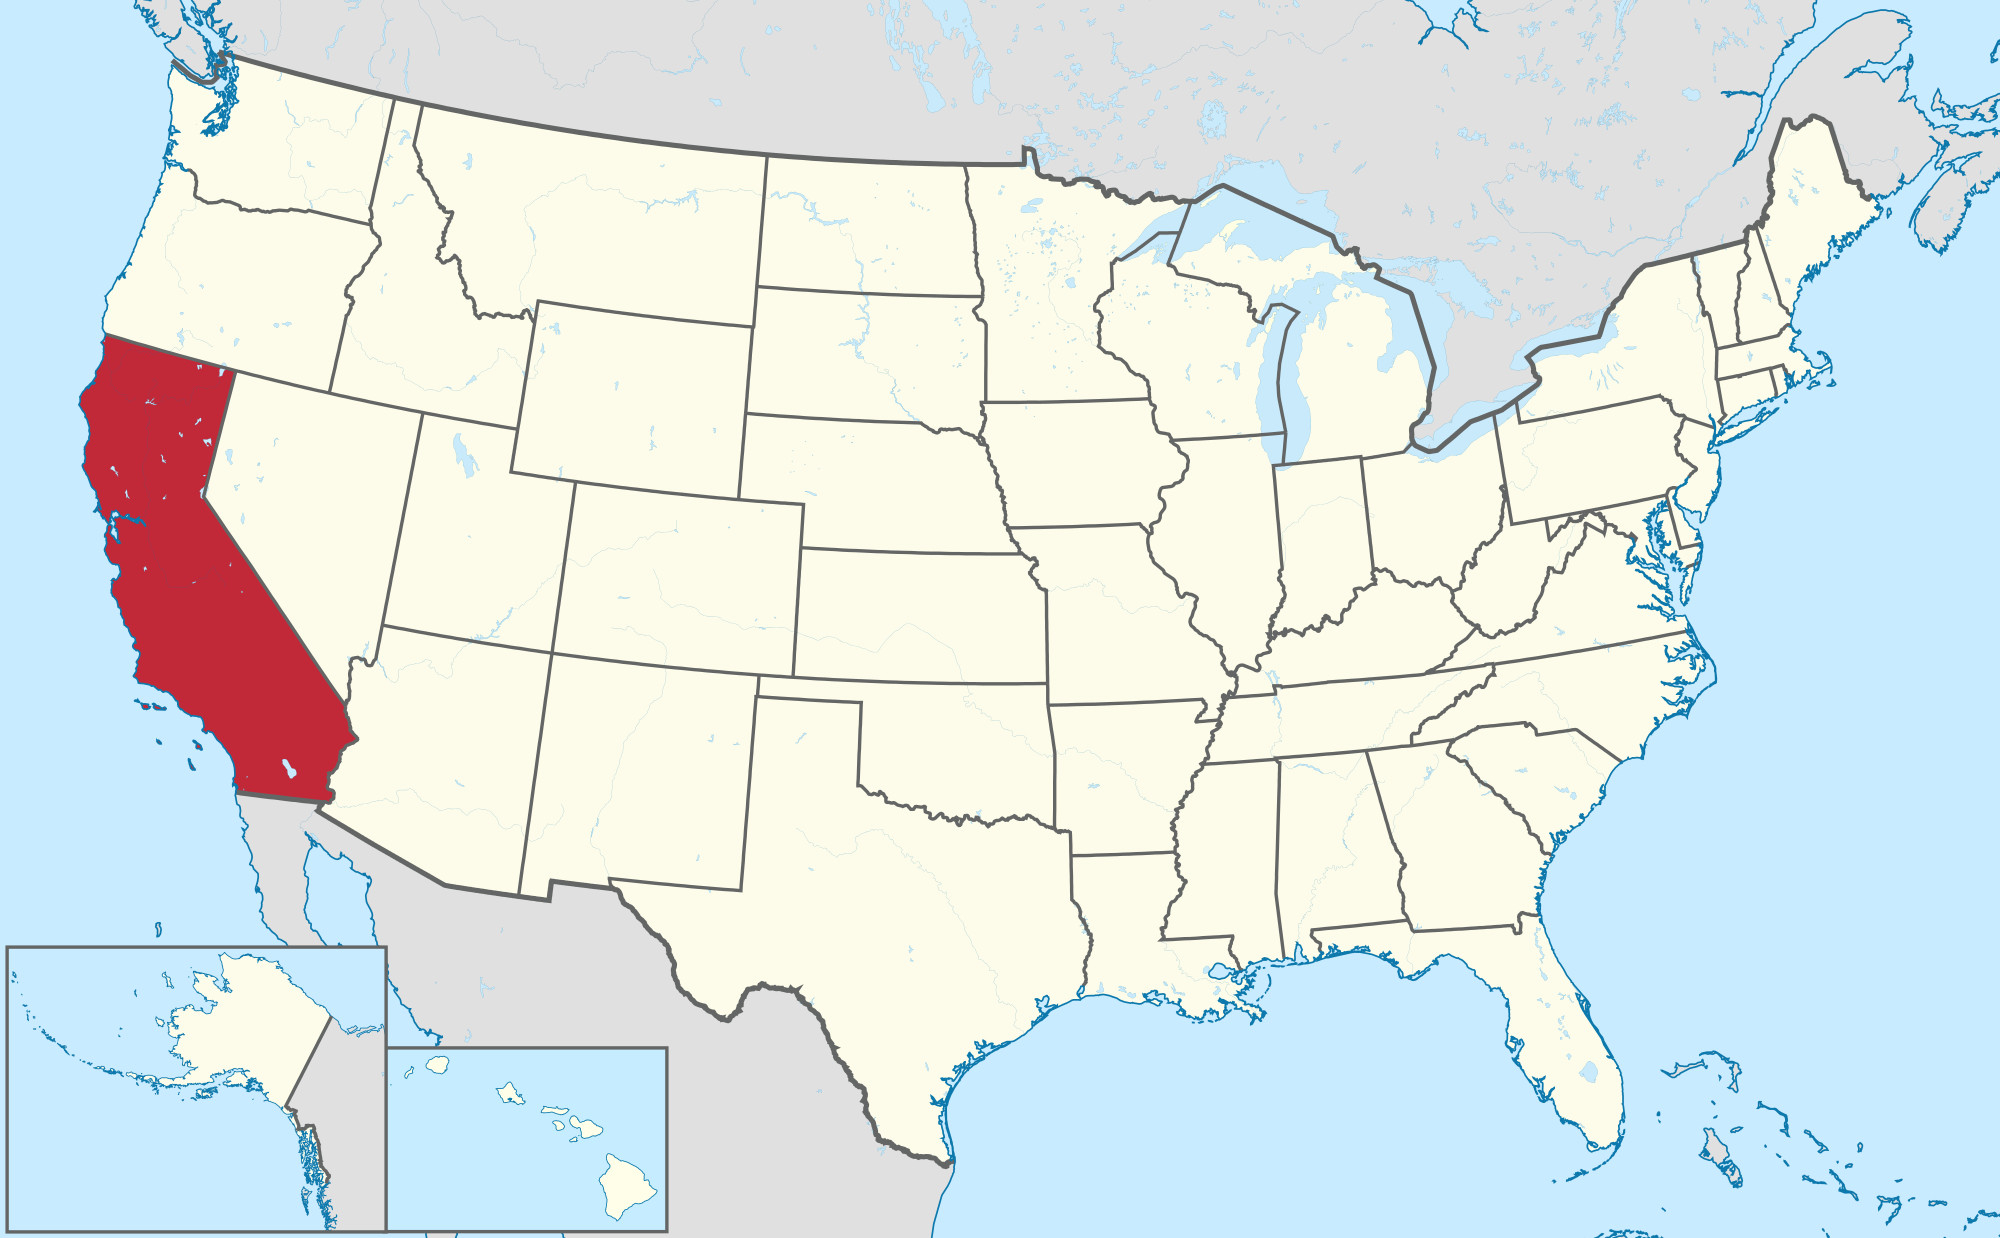 Where Is Paso Robles California On The Map Reference List Of Cities - Where Is Paso Robles California On The Map